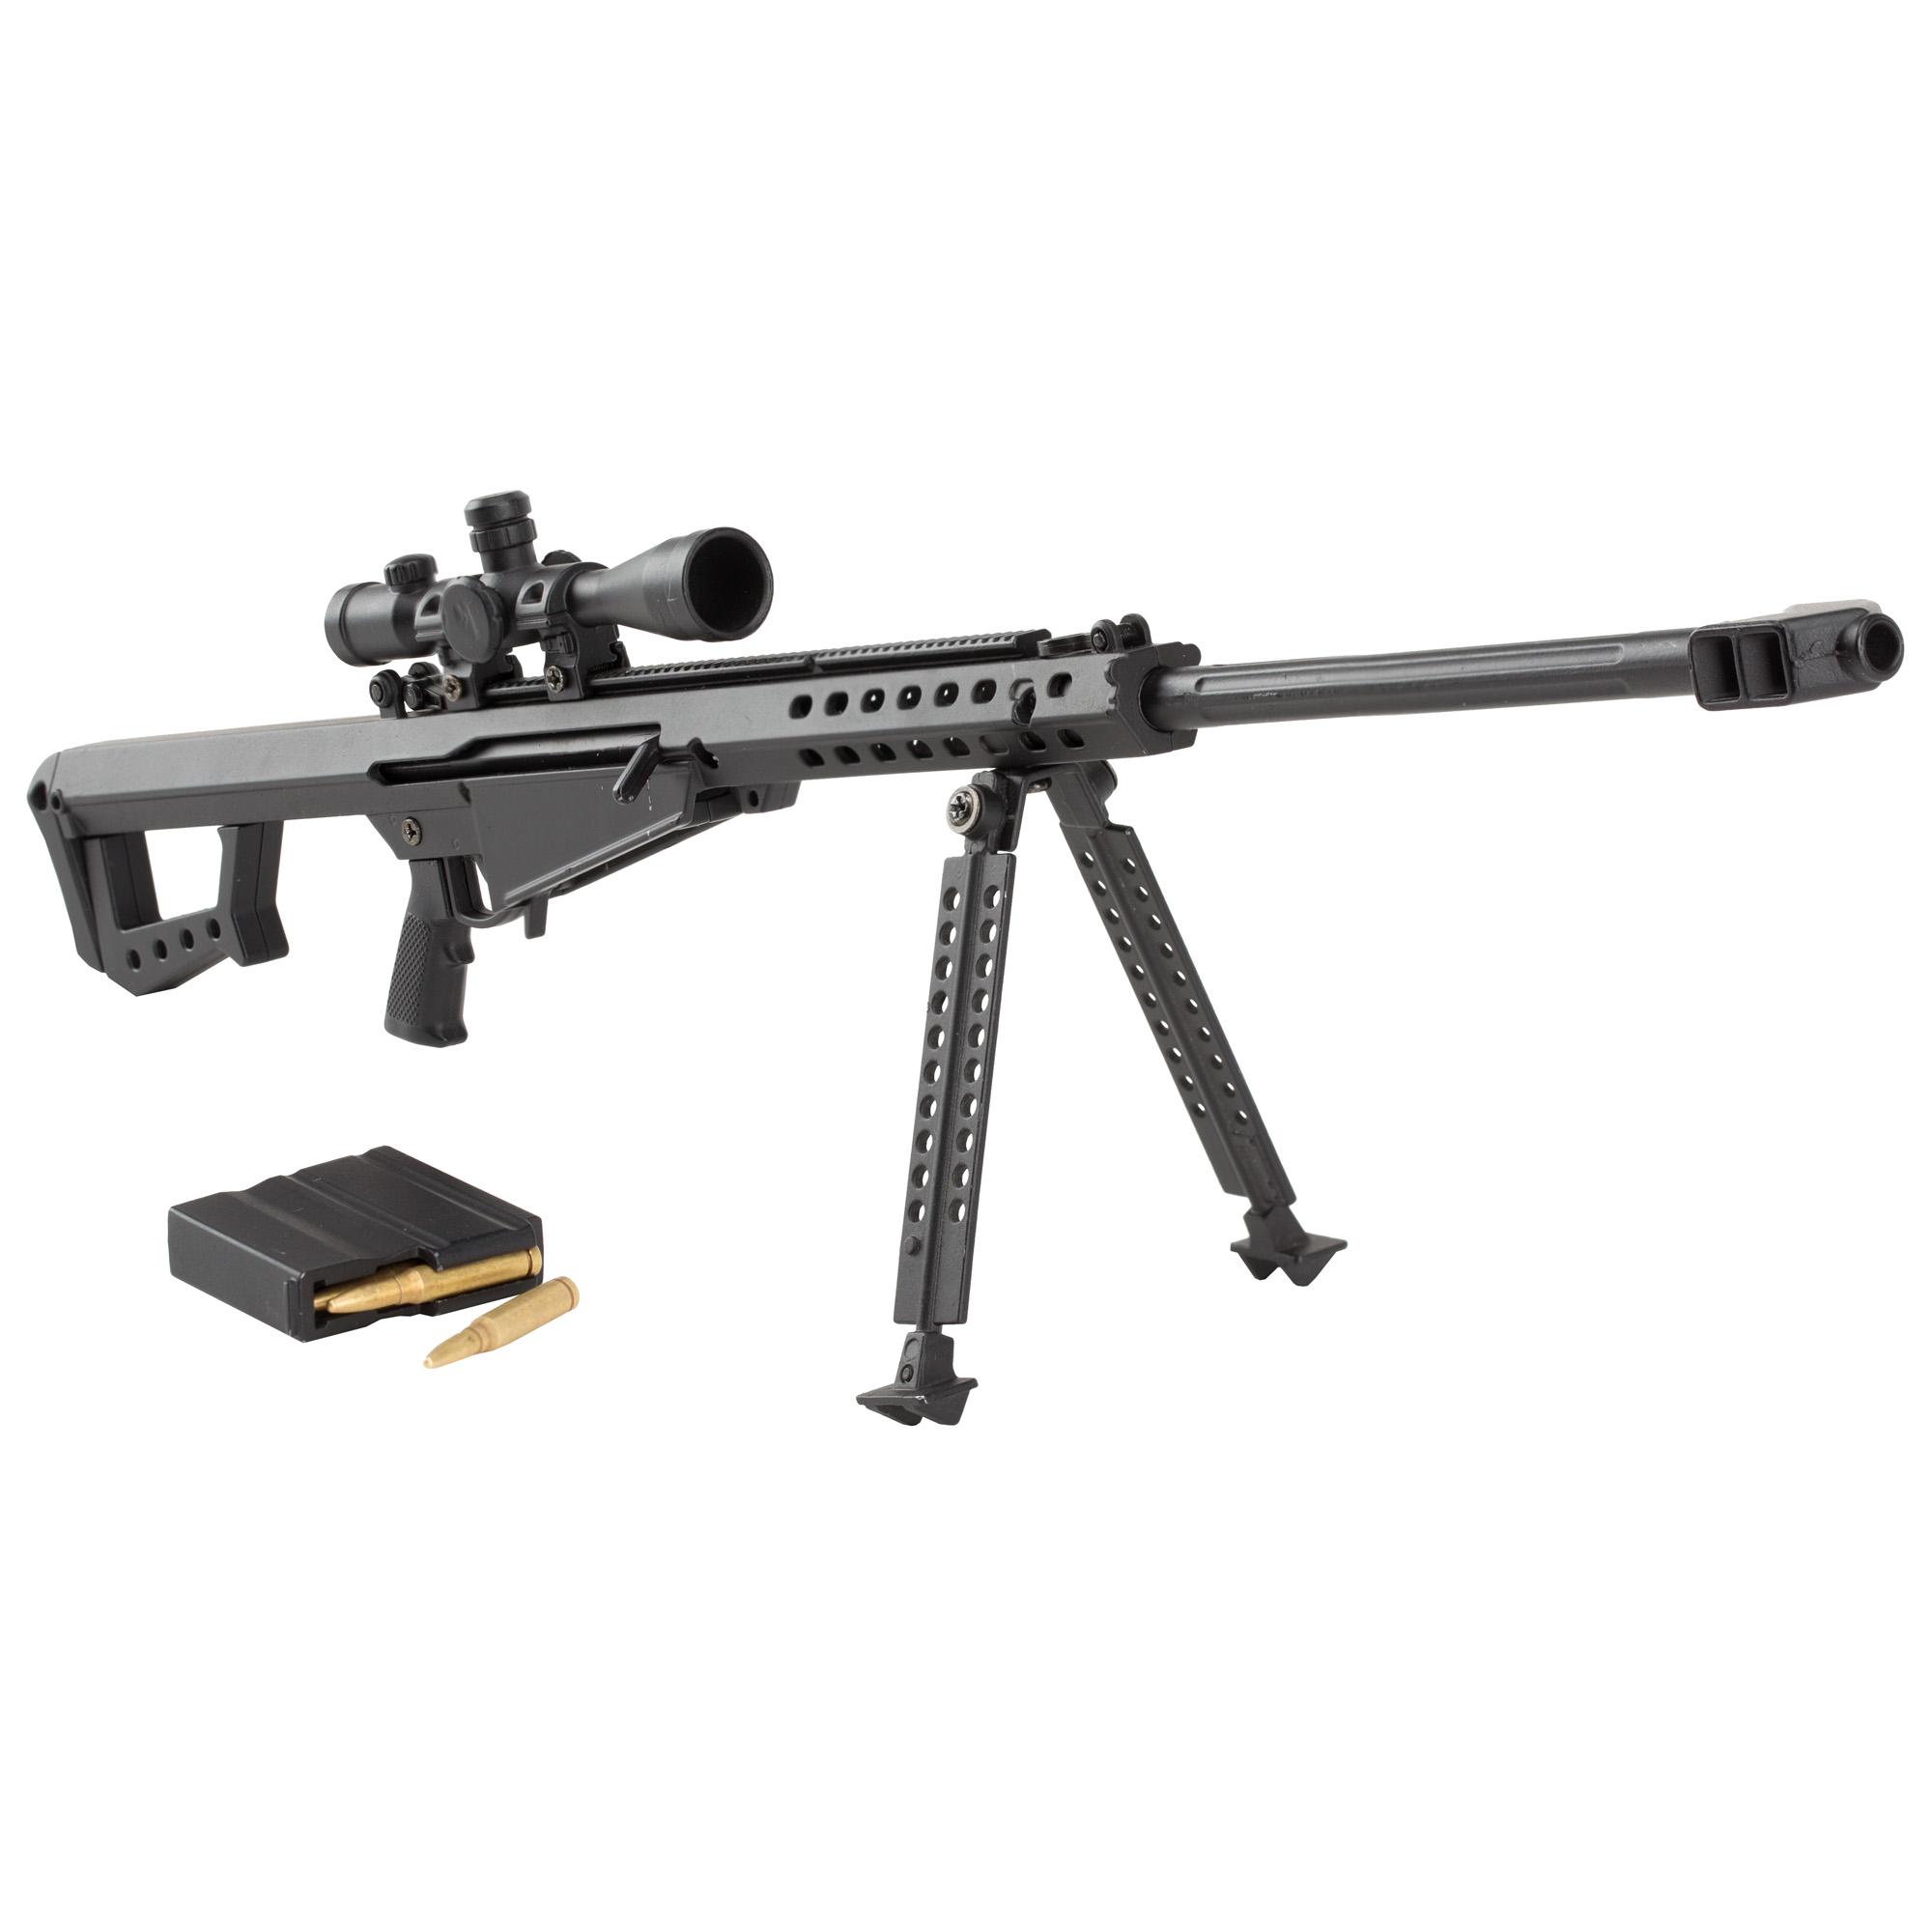 """Advanced Technology .50 Caliber Non-Firing Mini Replica"""" 1/3 Scale"""" Includes: Charging Handle (Pulls Back)"""" Flip-Up Iron Sights"""" Optional Scope"""" Spring Loaded Trigger"""" Removable Magazine and Bipod."""